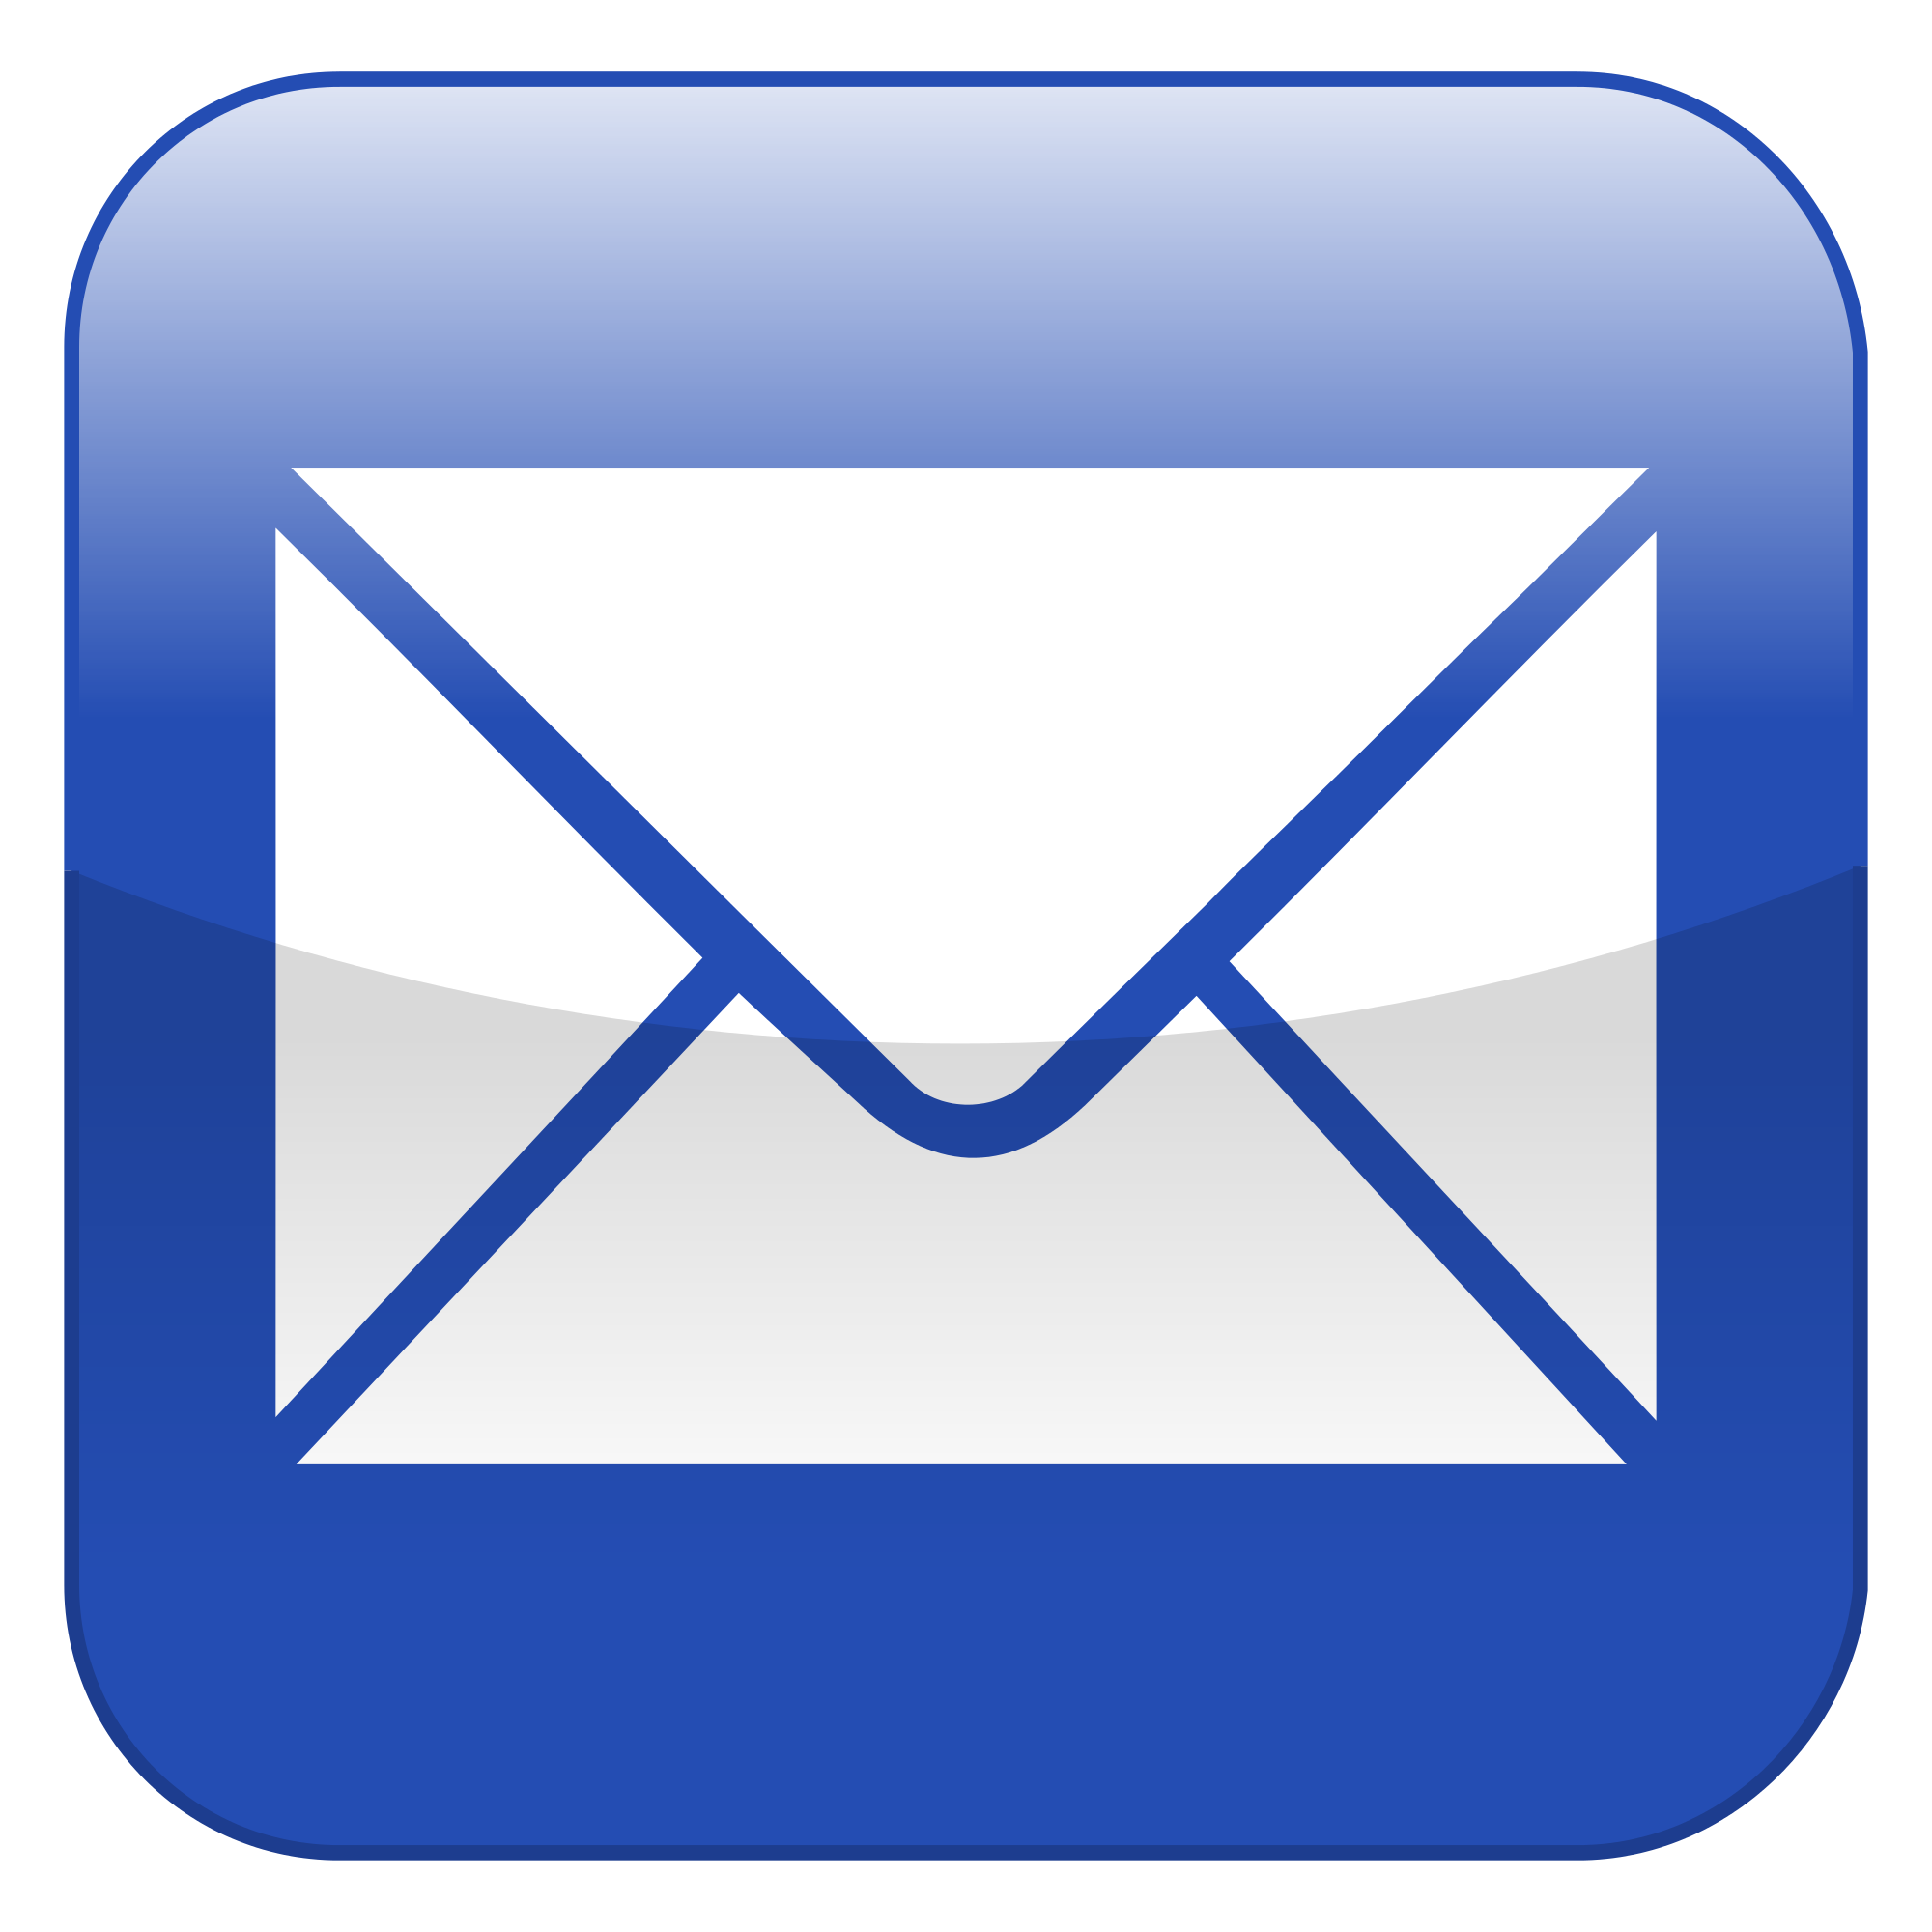 email-png-logo.png